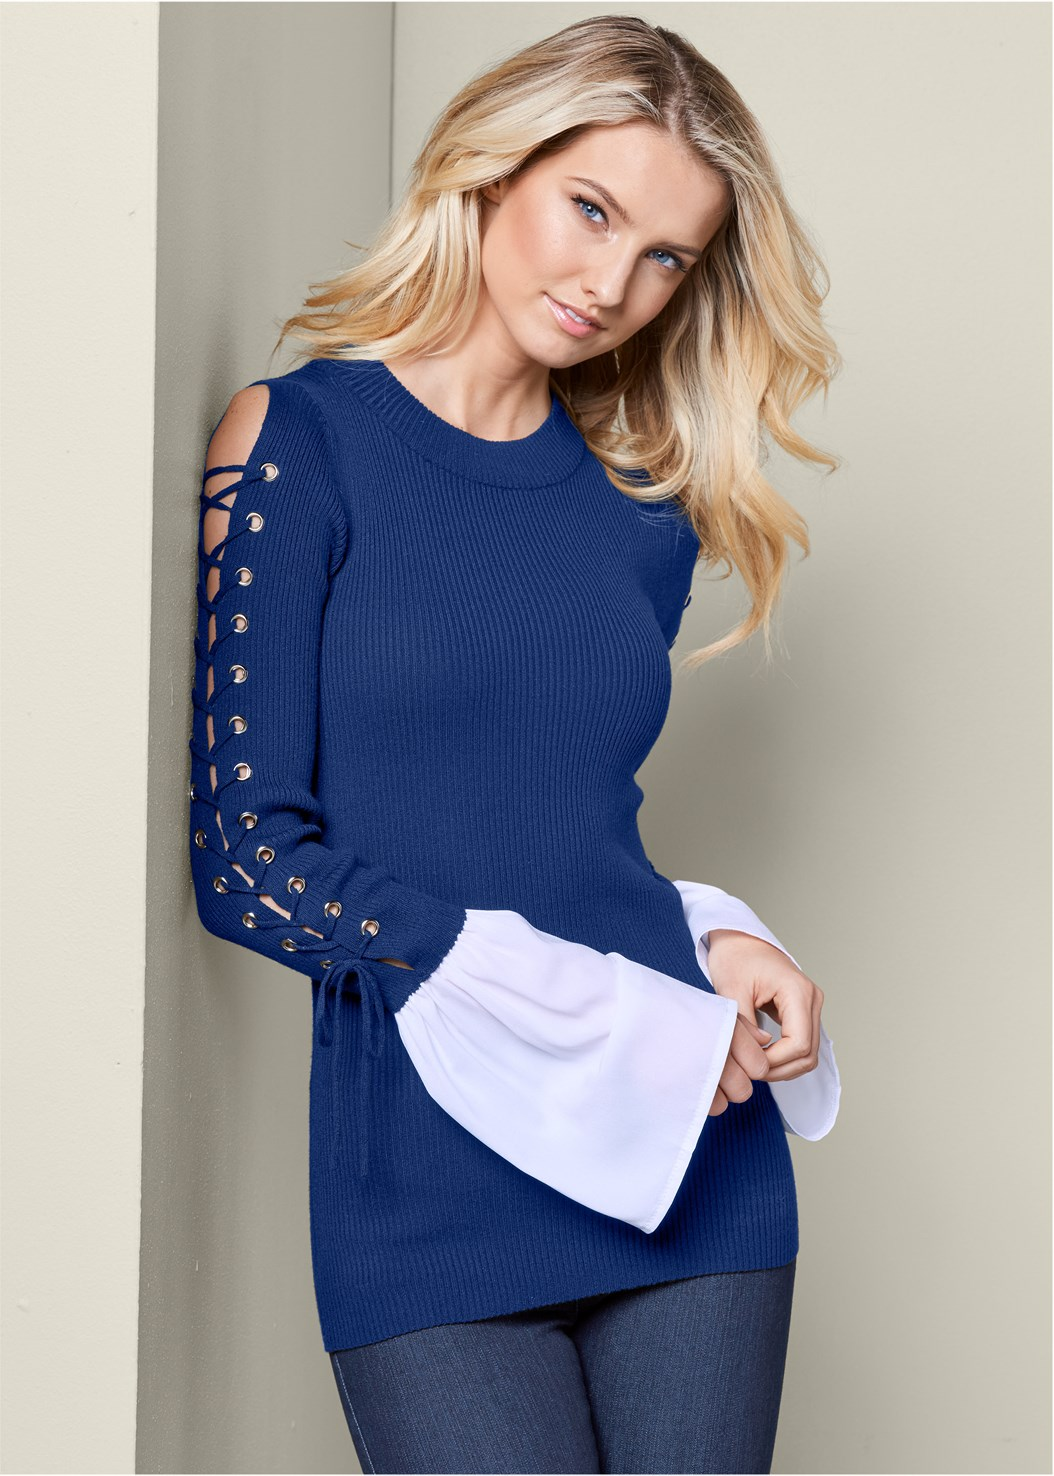 Lace Up Detail Sweater,Mid Rise Slimming Stretch Jeggings